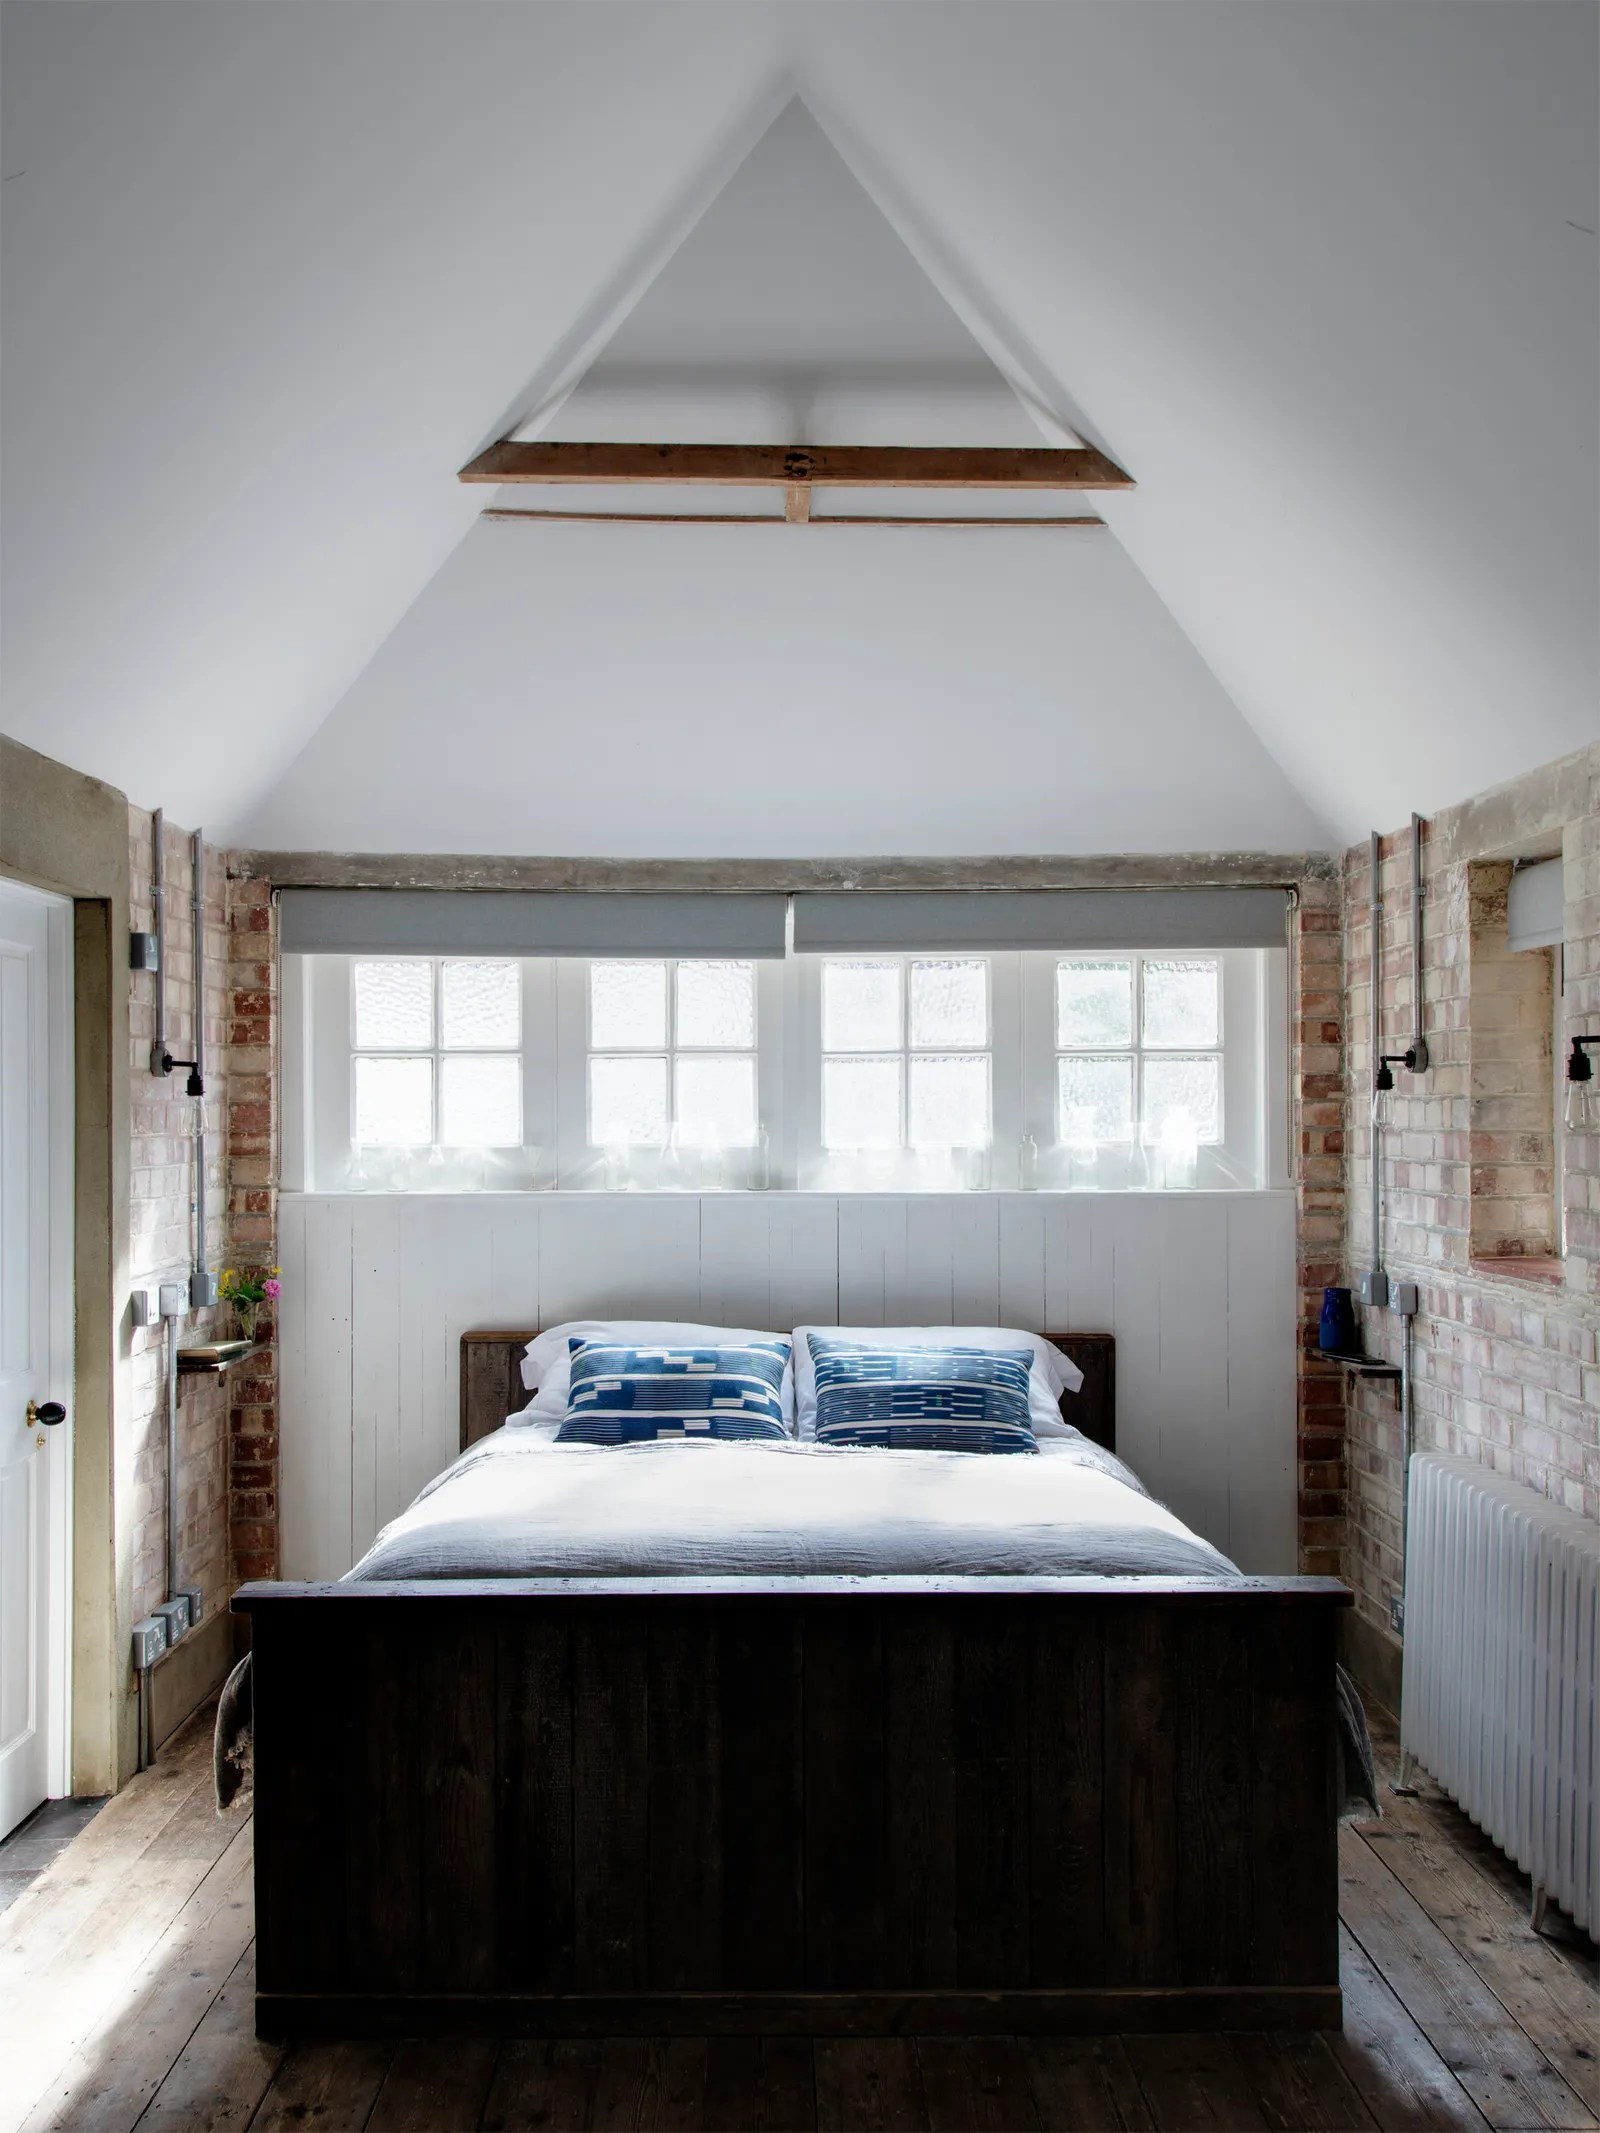 This Garage Makeover It S Now A Bedroom Suite Is Nuts